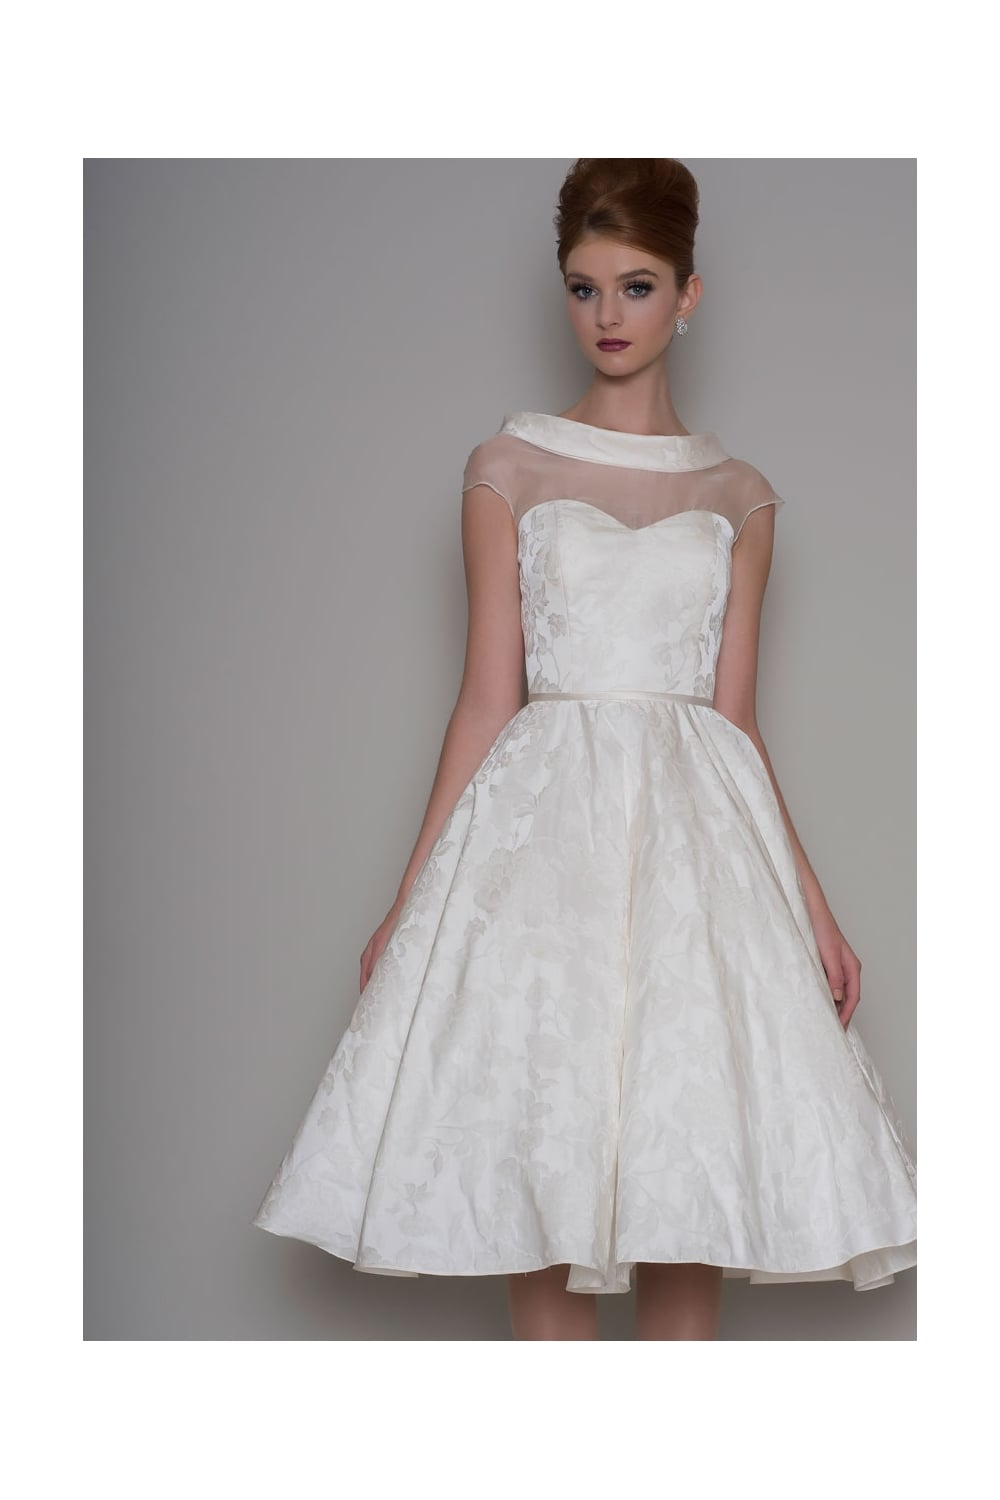 Mabel Tea Length Audrey Hepburn Style Wedding Dress In Brocade